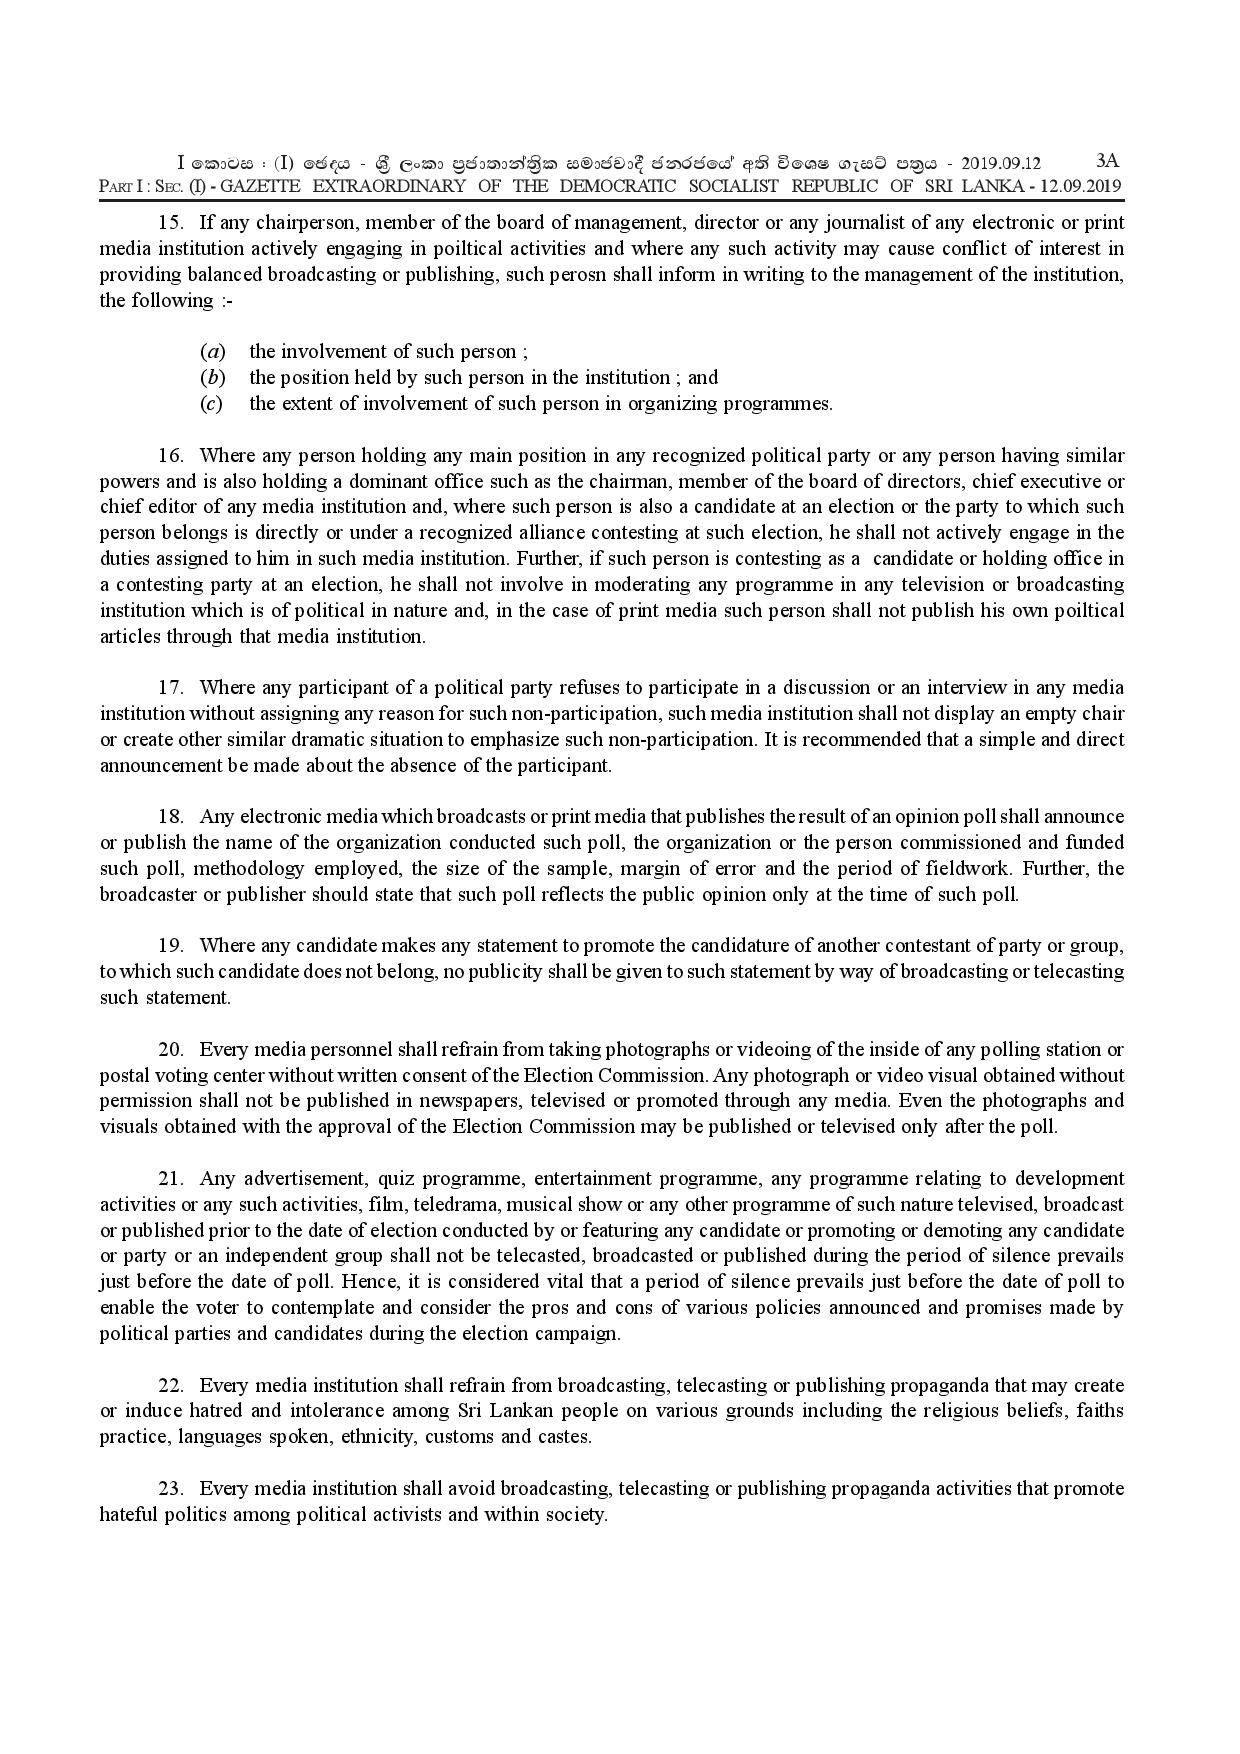 media guidlines E page 003